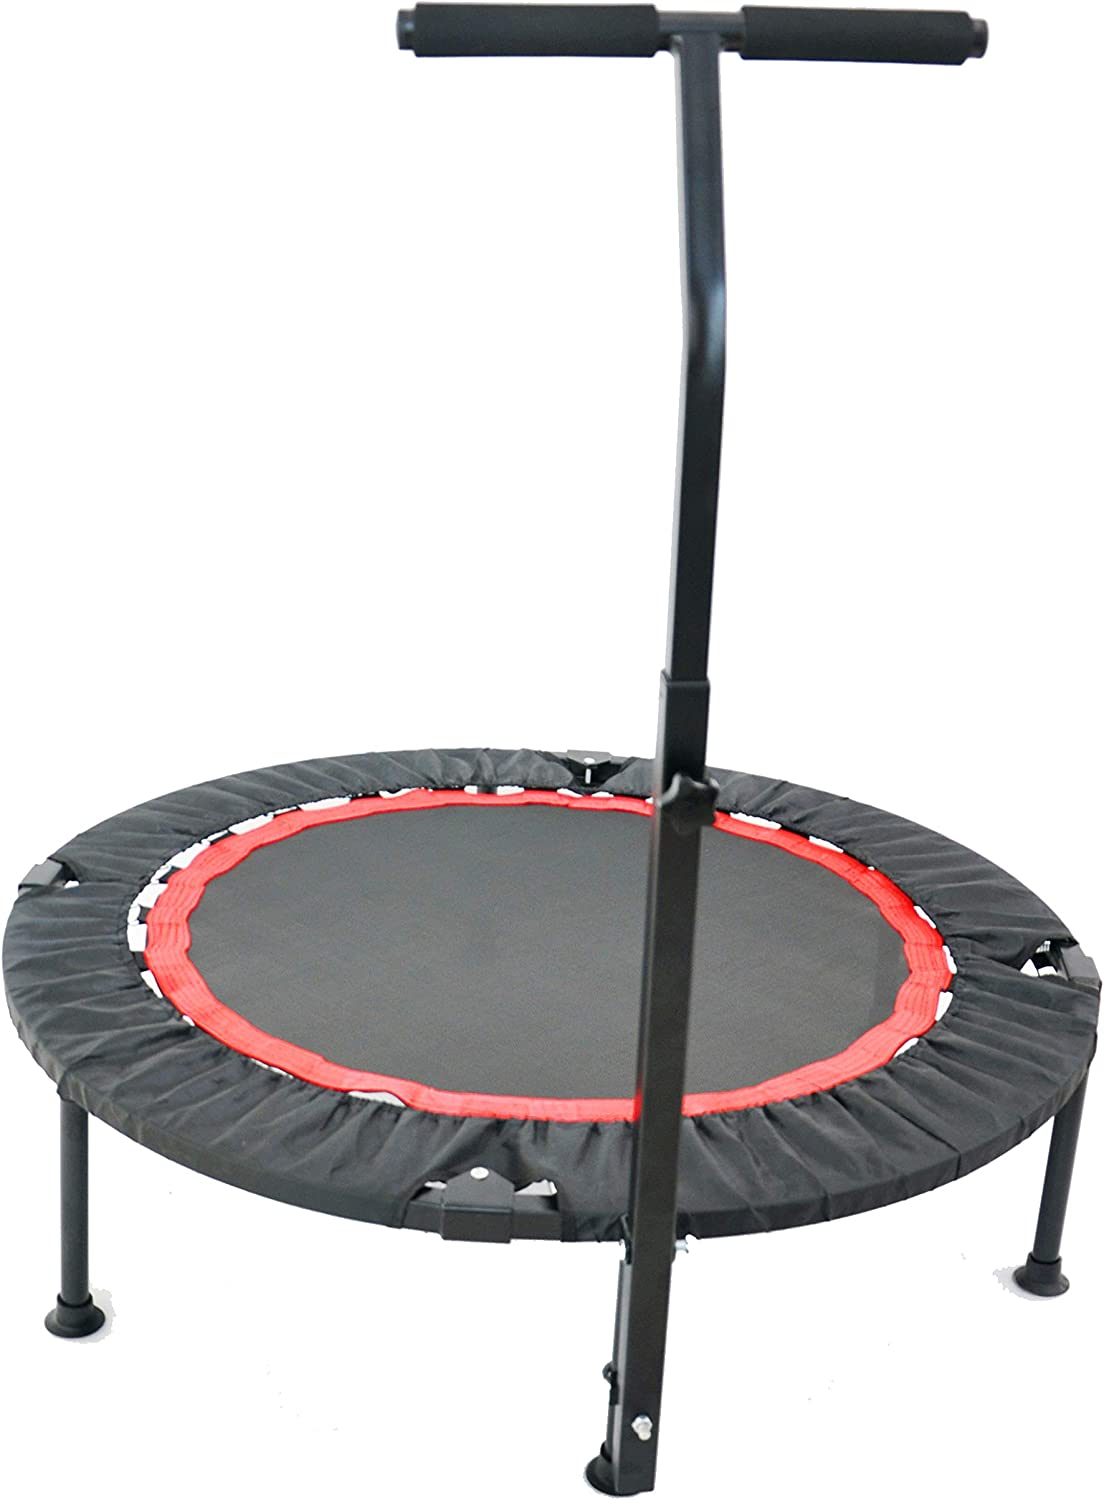 Spring new work Luxury goods one after another Mini Fitness Trampoline 40 Tram Inch Rebounder